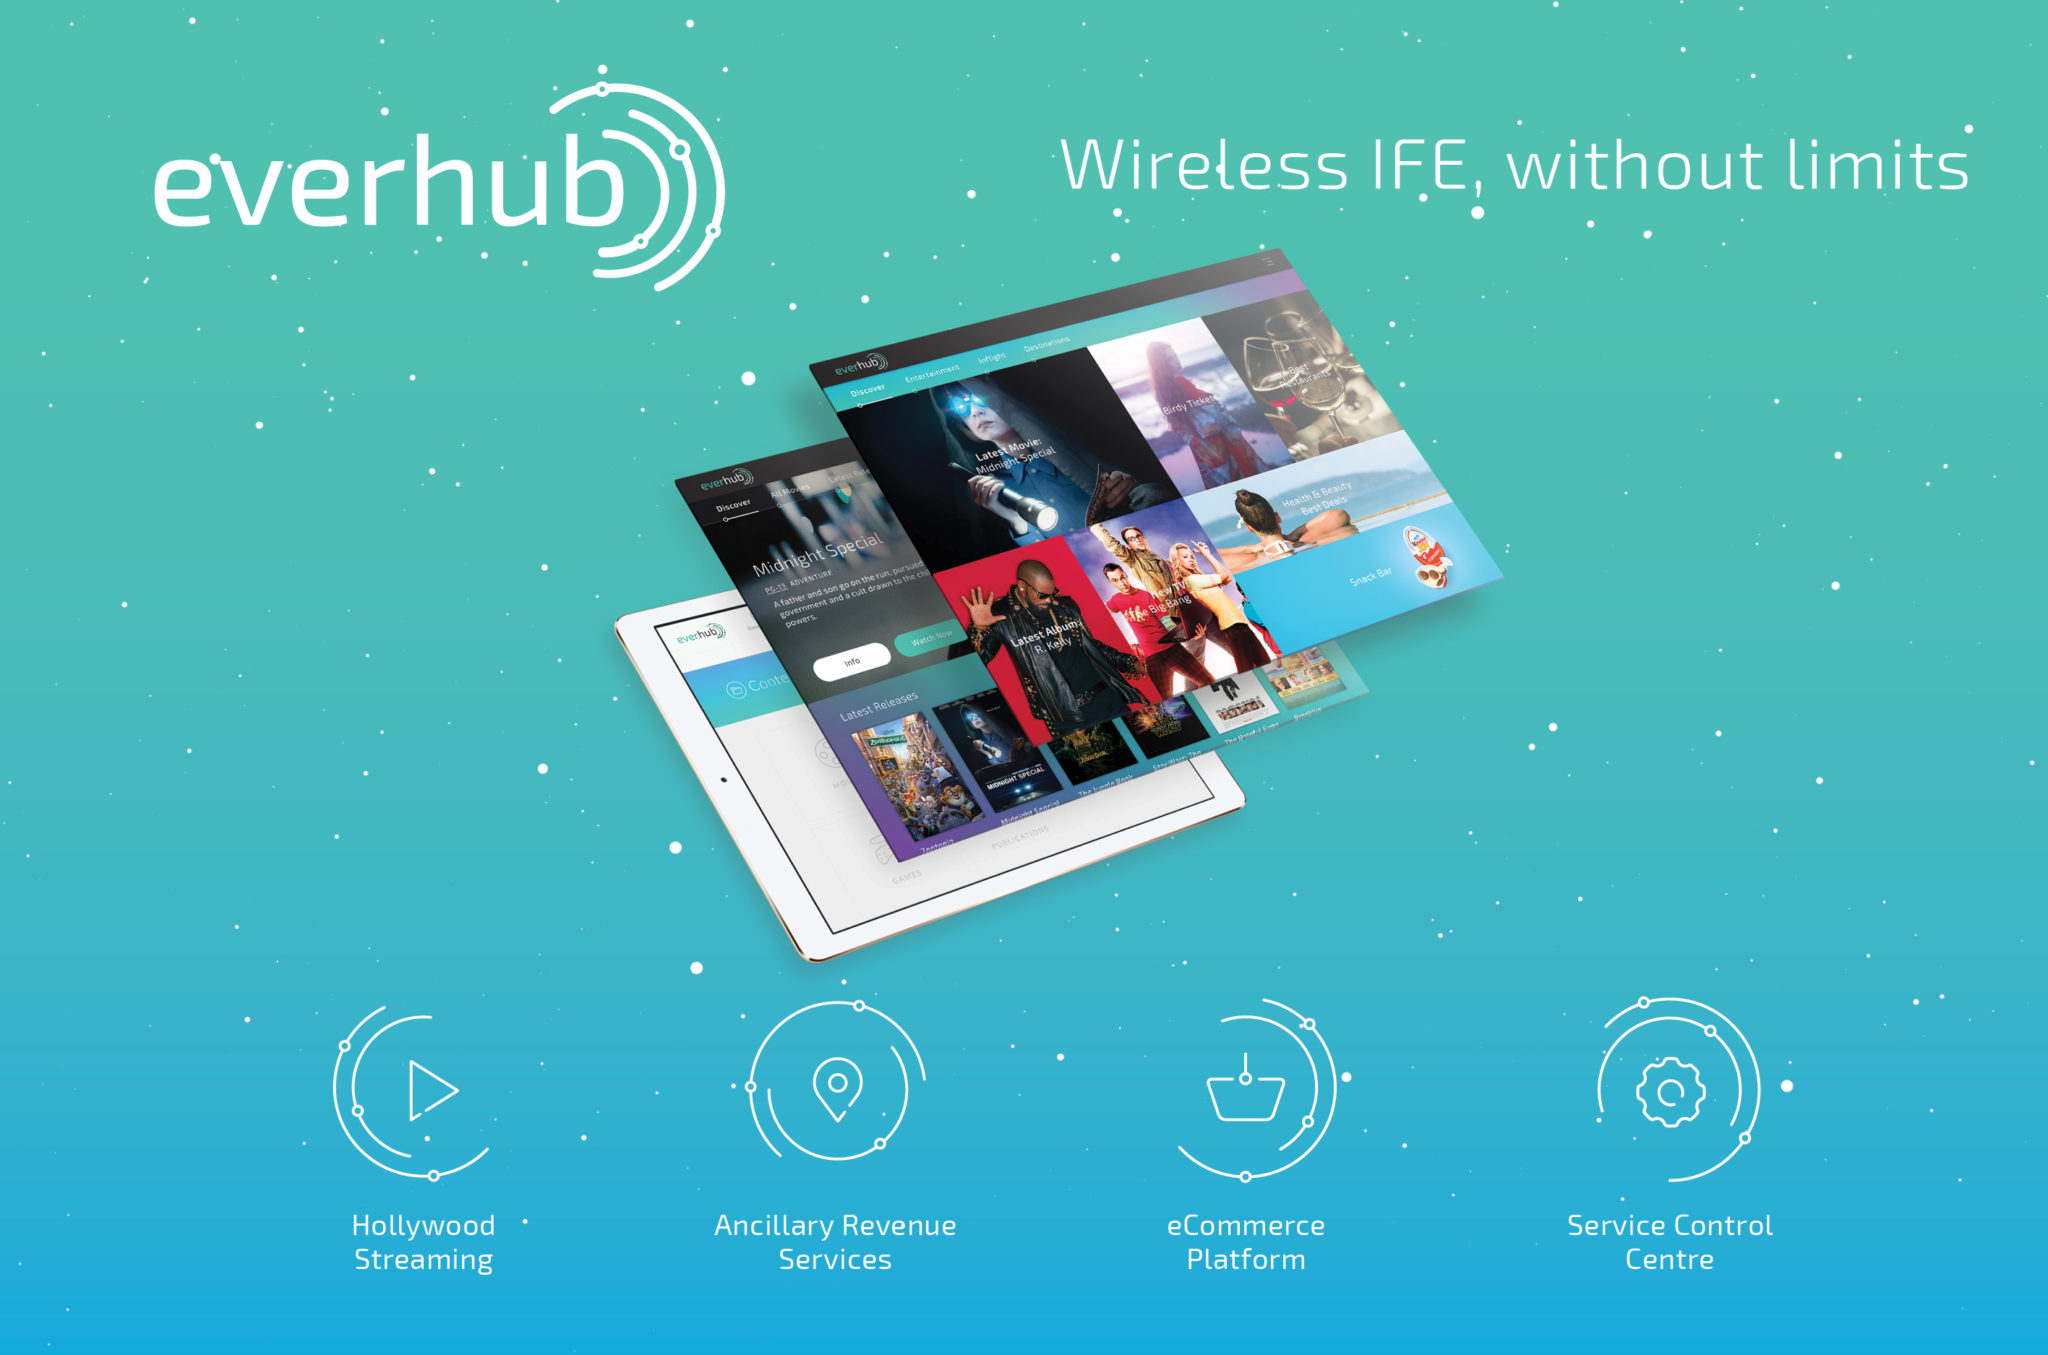 Everhub is a multipurpose wireless IFE solution. Image: Inflight Dublin